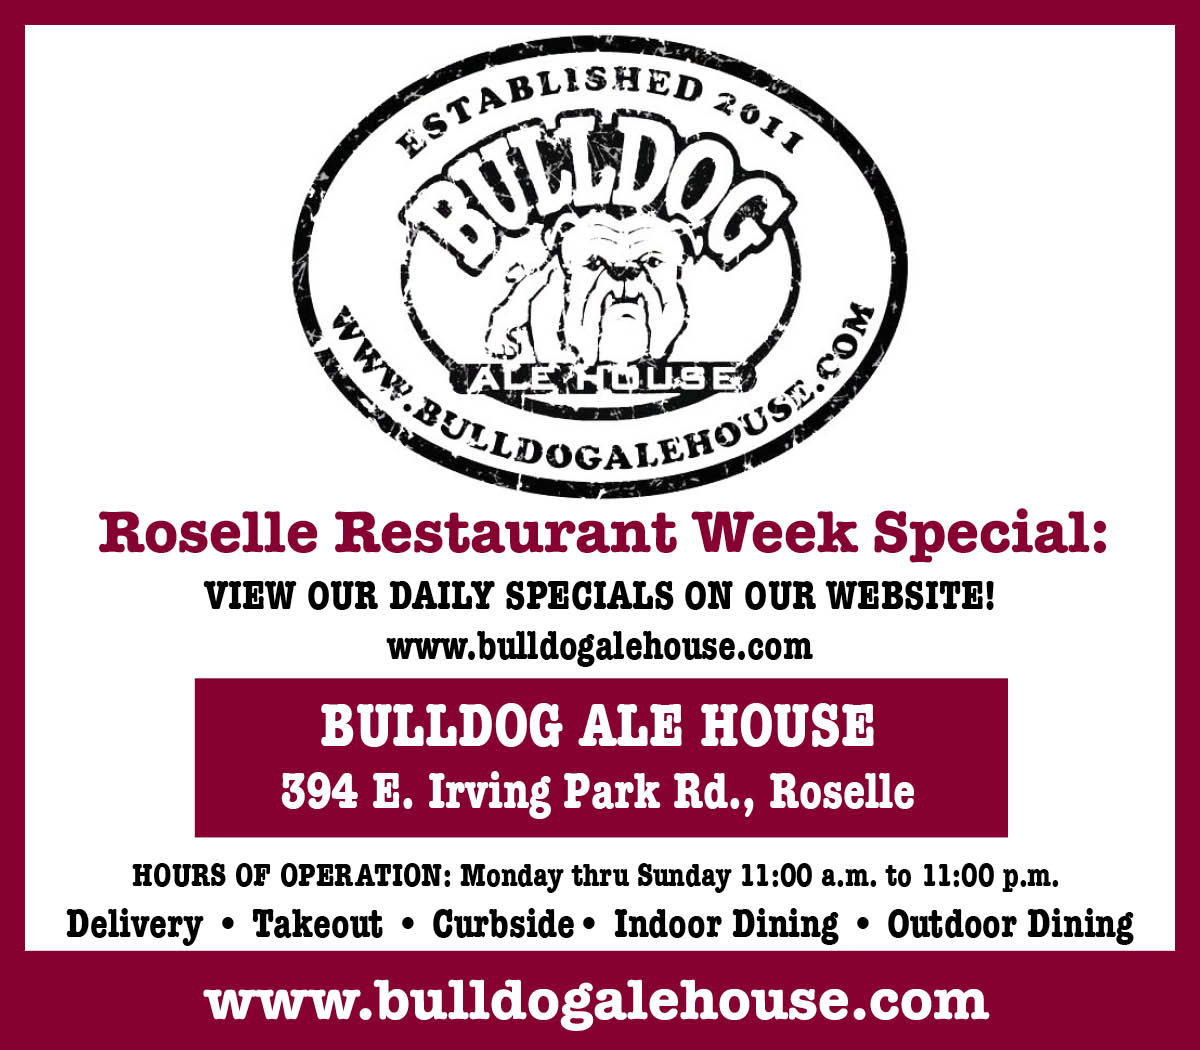 Bulldog Ale House Opens in new window